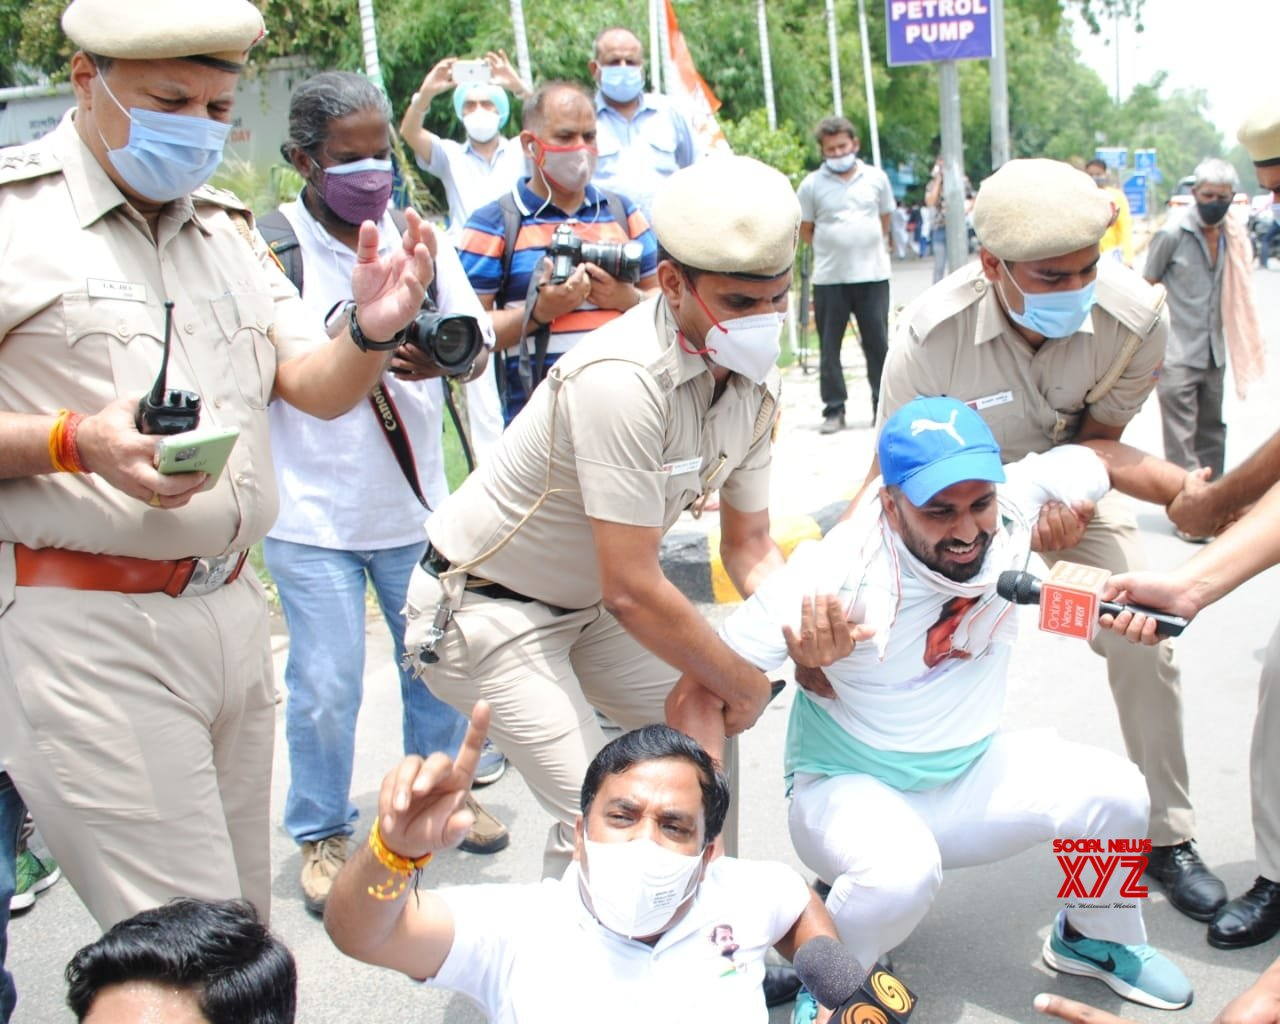 New Delhi: Delhi Pradesh Congress Committee President Ch. Anil Kumar participates in the protest against frequent hikes in the price of petrol and diesel, at all the petrol pumps across Delhi. #Gallery